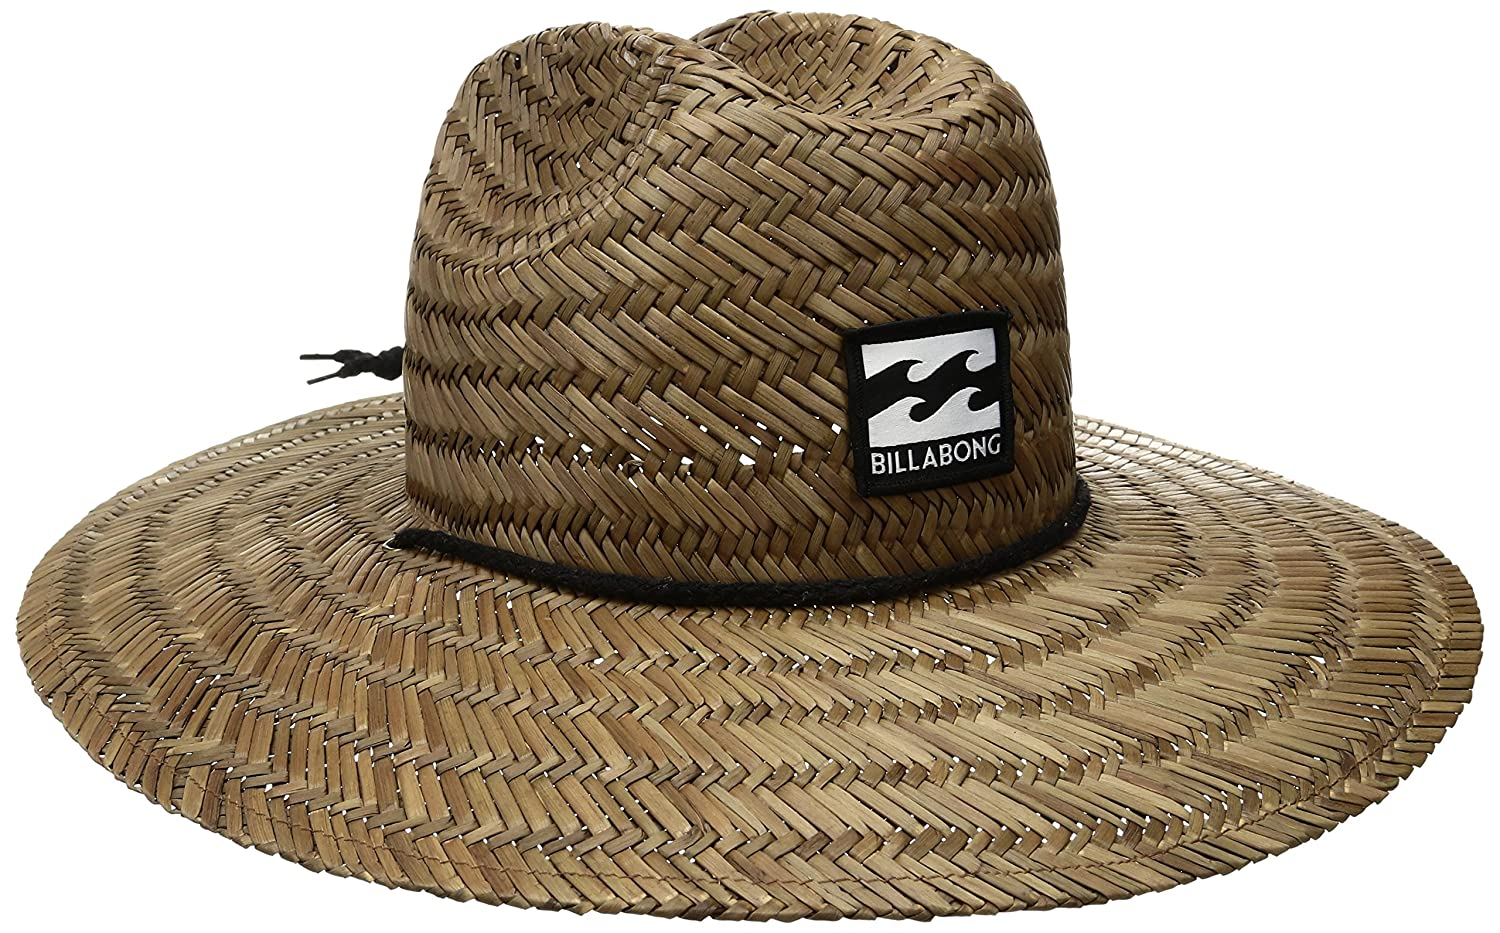 21a647b80e3e4 Amazon.com  Billabong Men s Tides Hat Brown One Size  Clothing